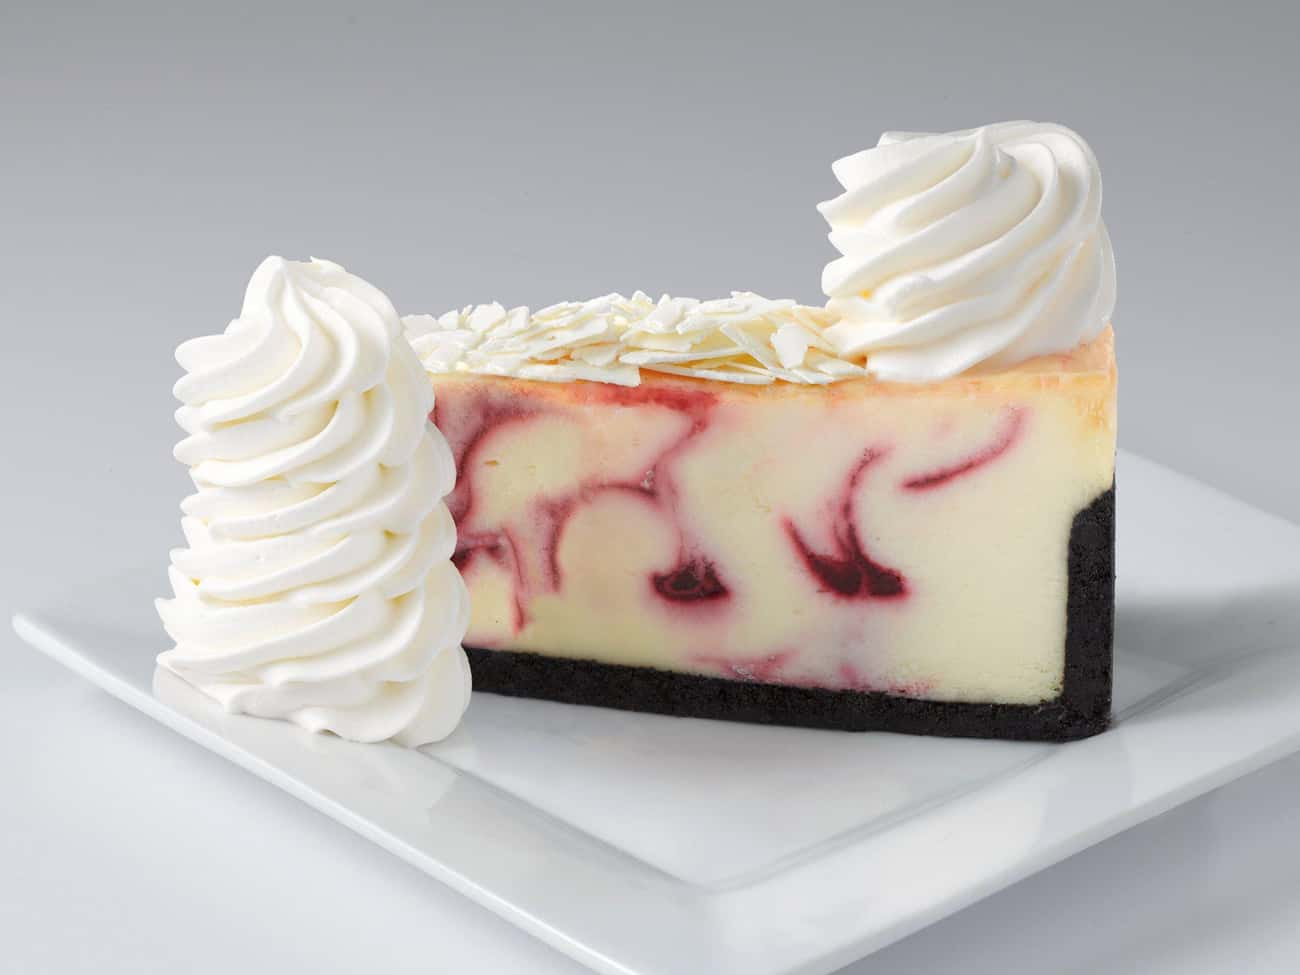 White Chocolate Raspberry Truf is listed (or ranked) 4 on the list The Best Cheesecakes At The Cheesecake Factory, Ranked